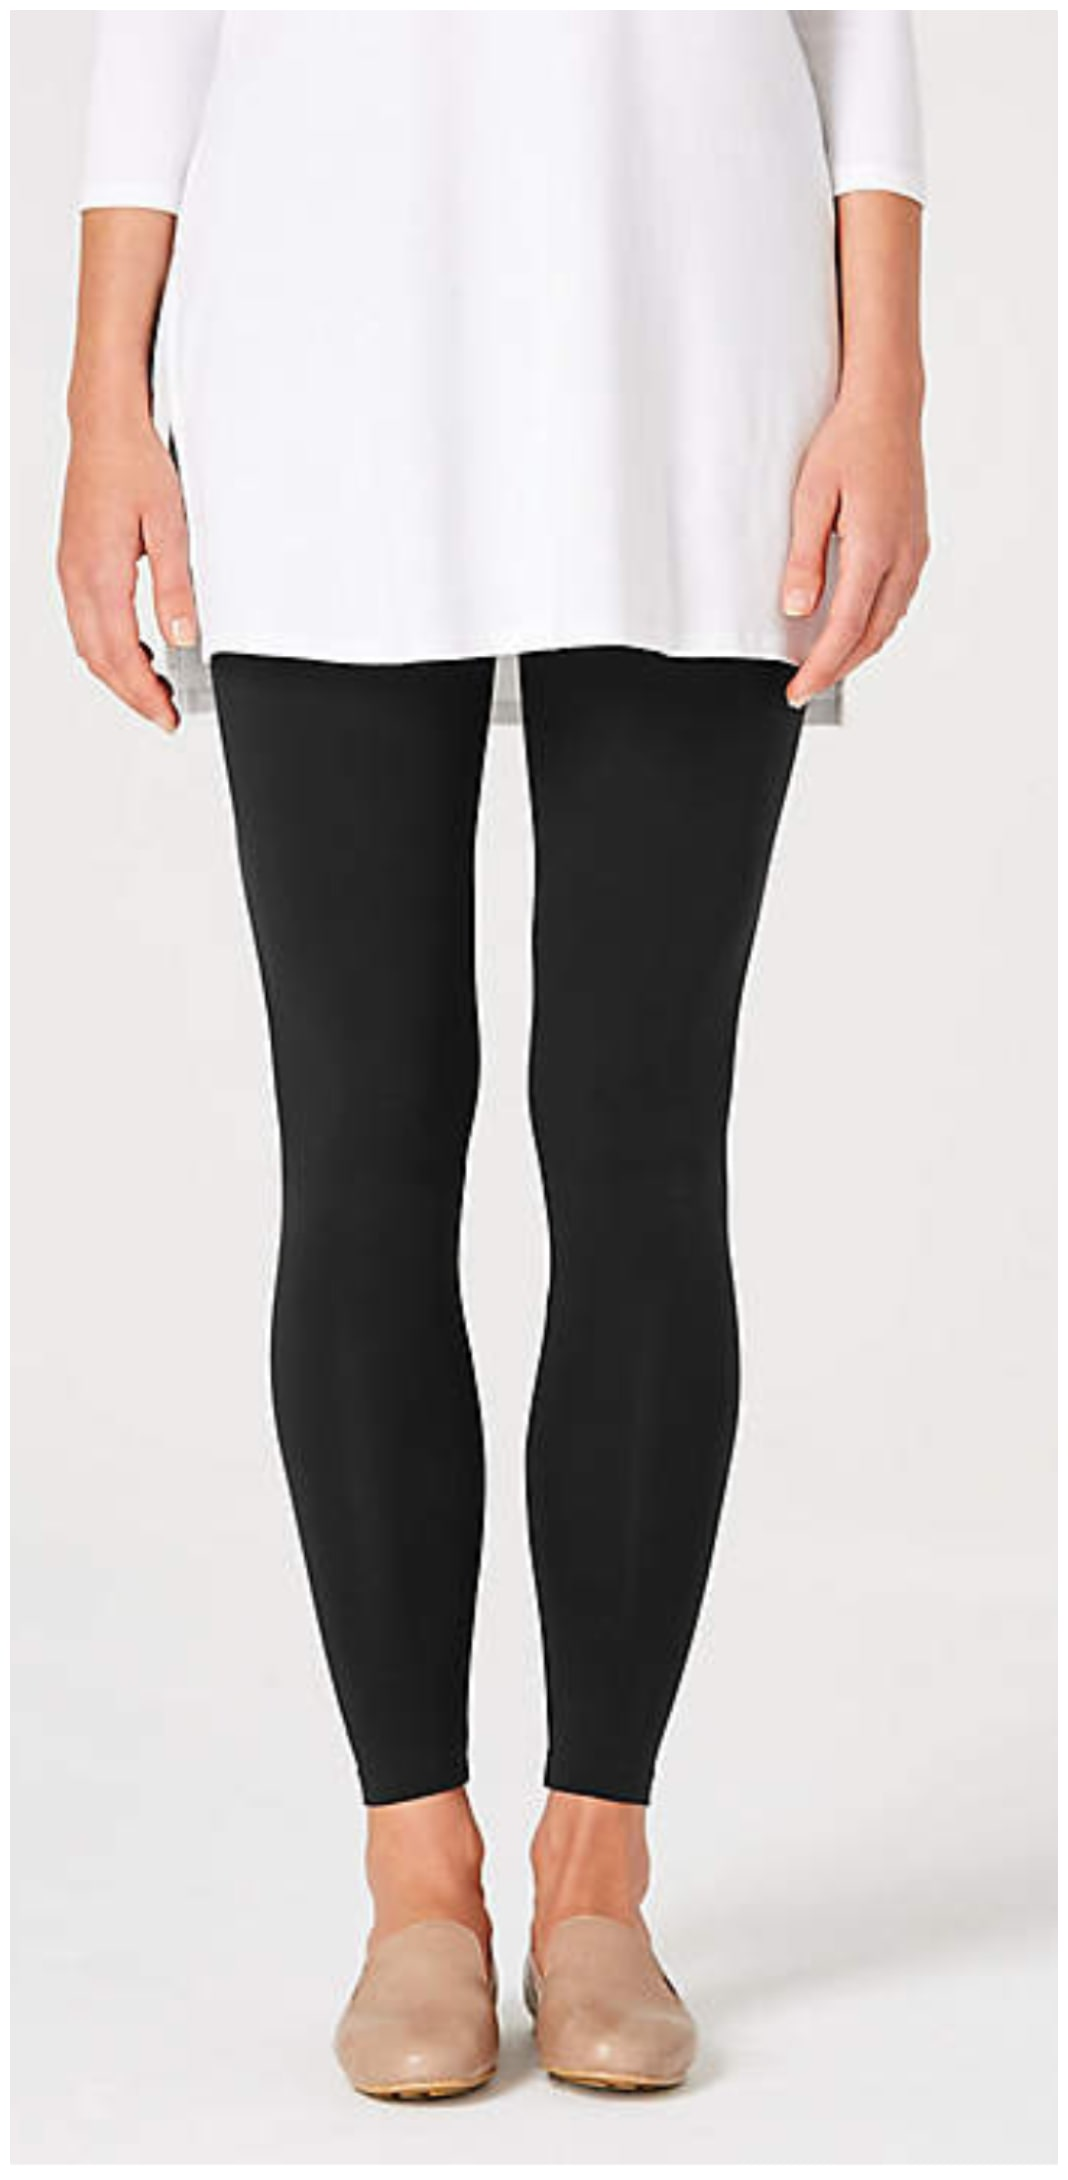 6f1d0b7a04 Womens Leggings Online - Printed & Ankle Length Leggings for Ladies | Paytm  Mall